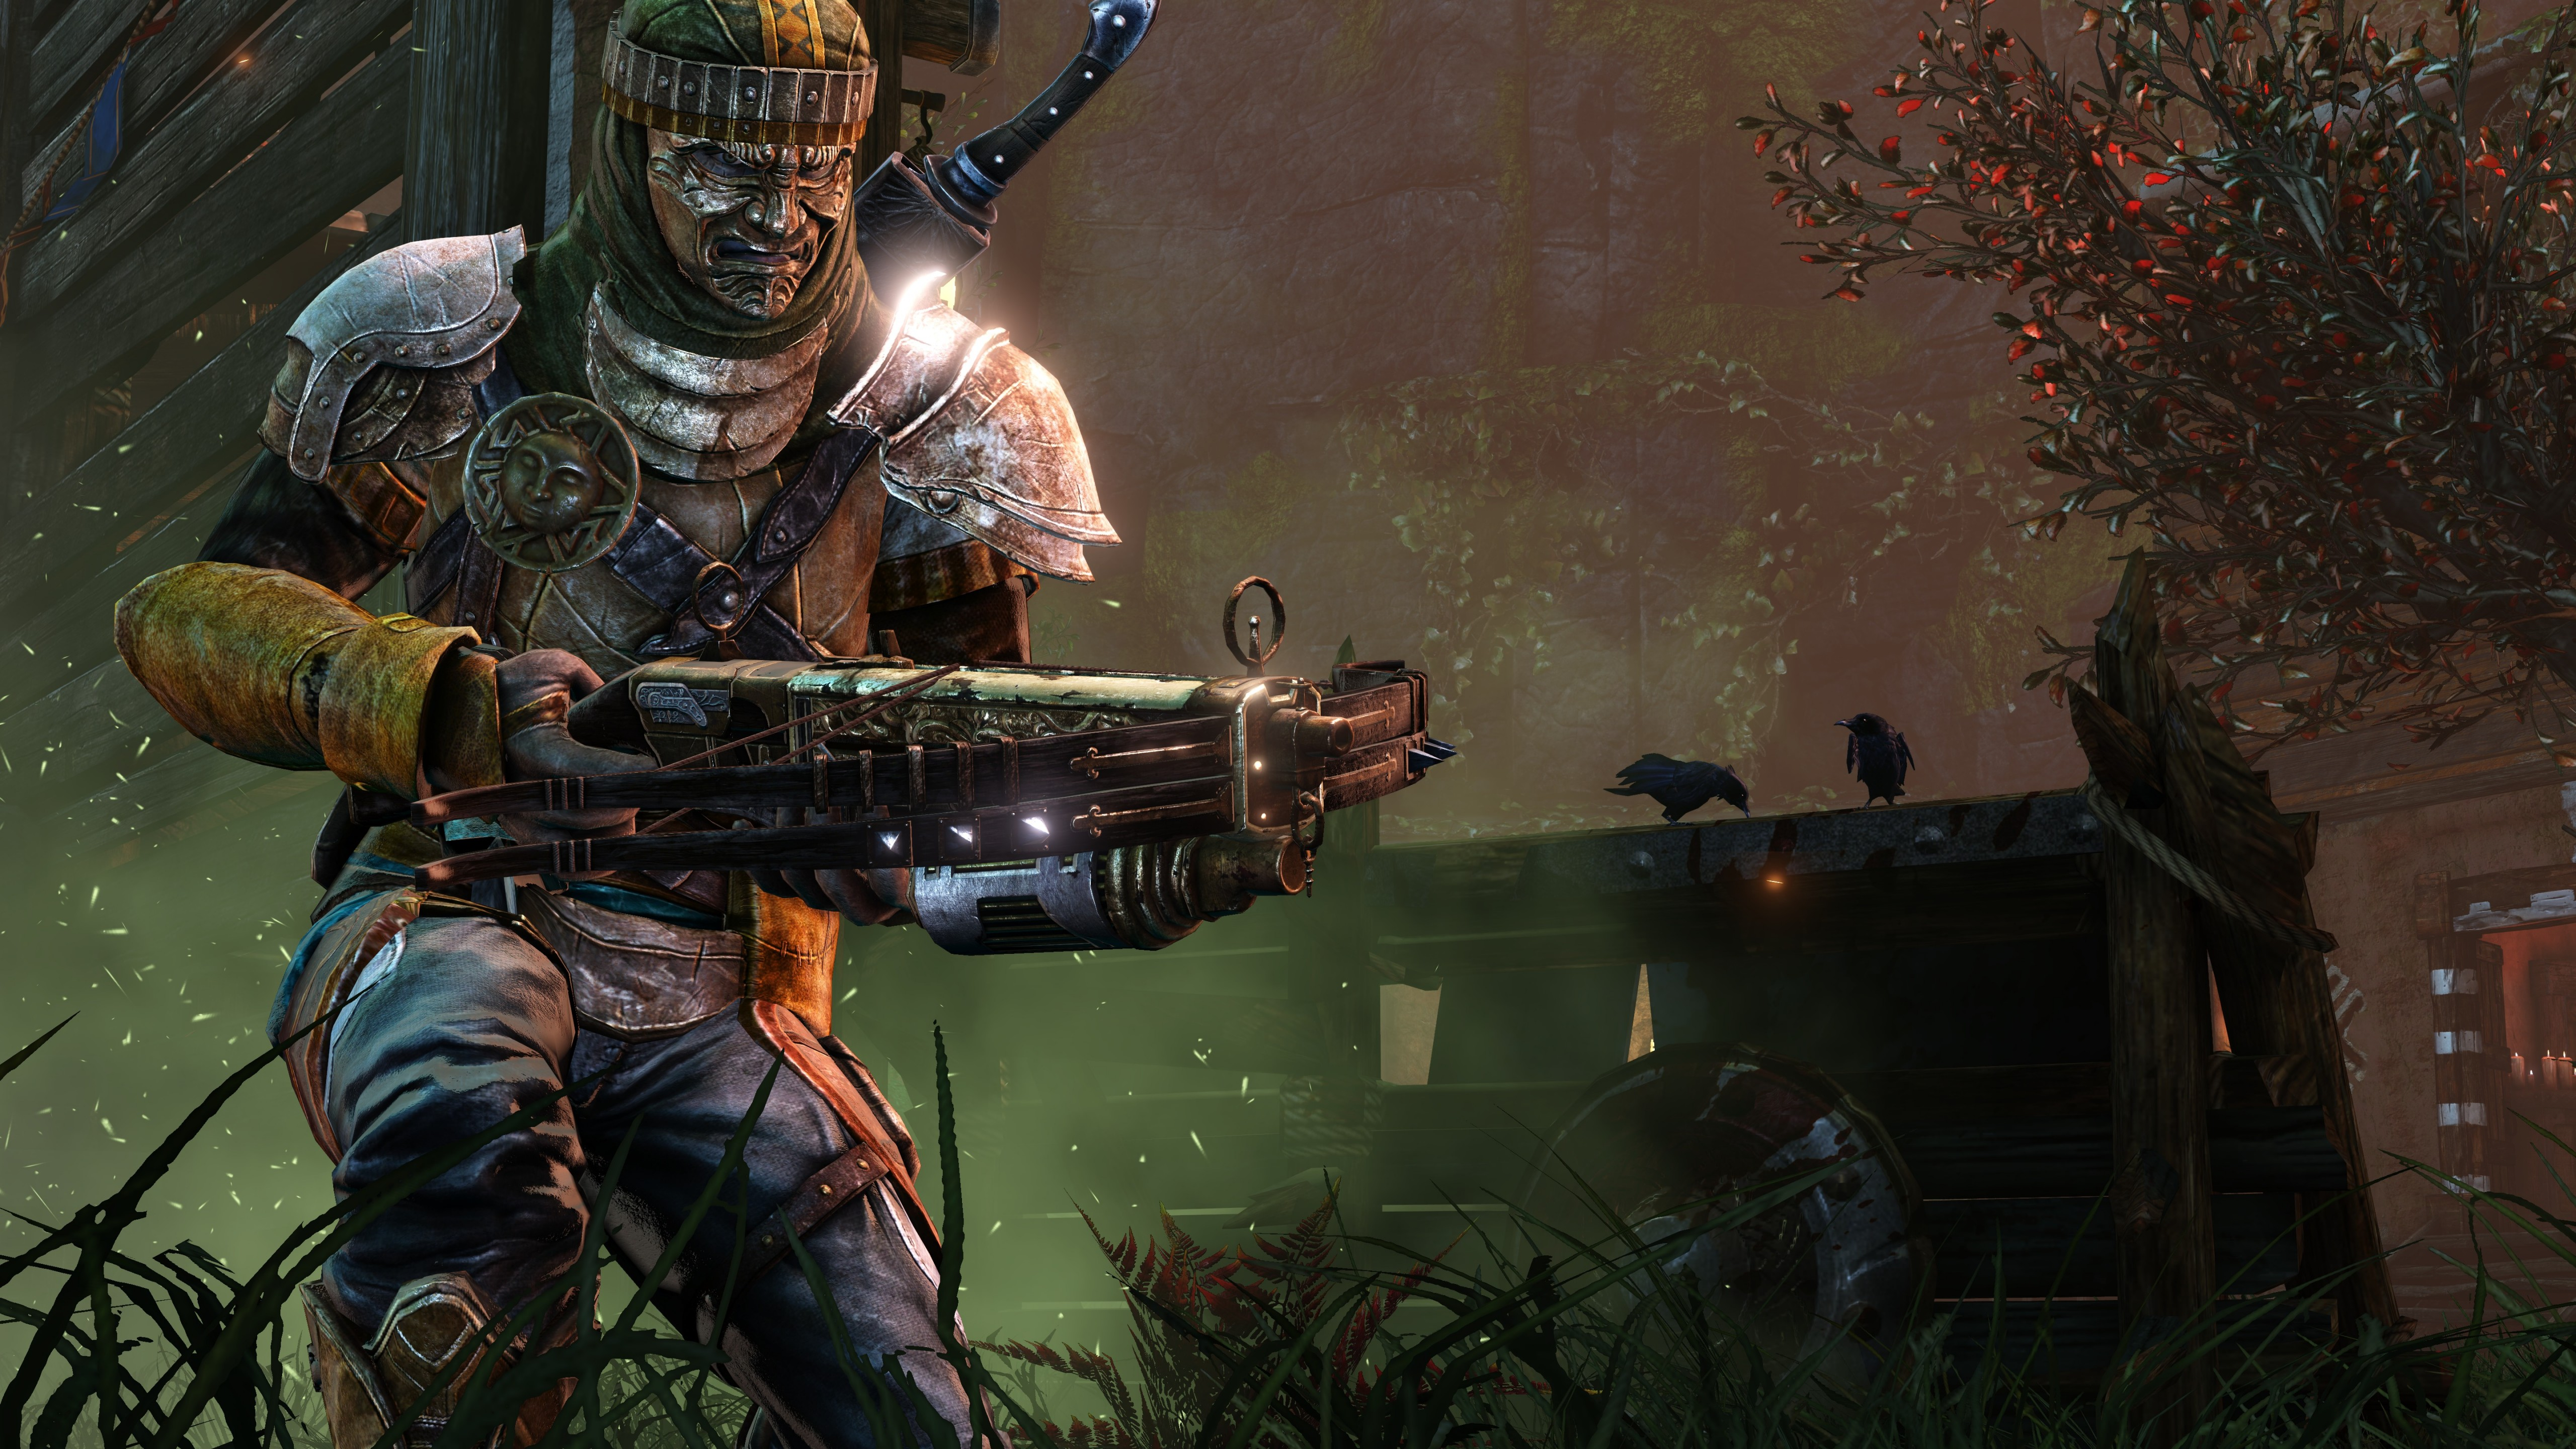 Architecture Wallpaper Fall Wallpaper Nosgoth Game Mmo Shooter Prophet Best